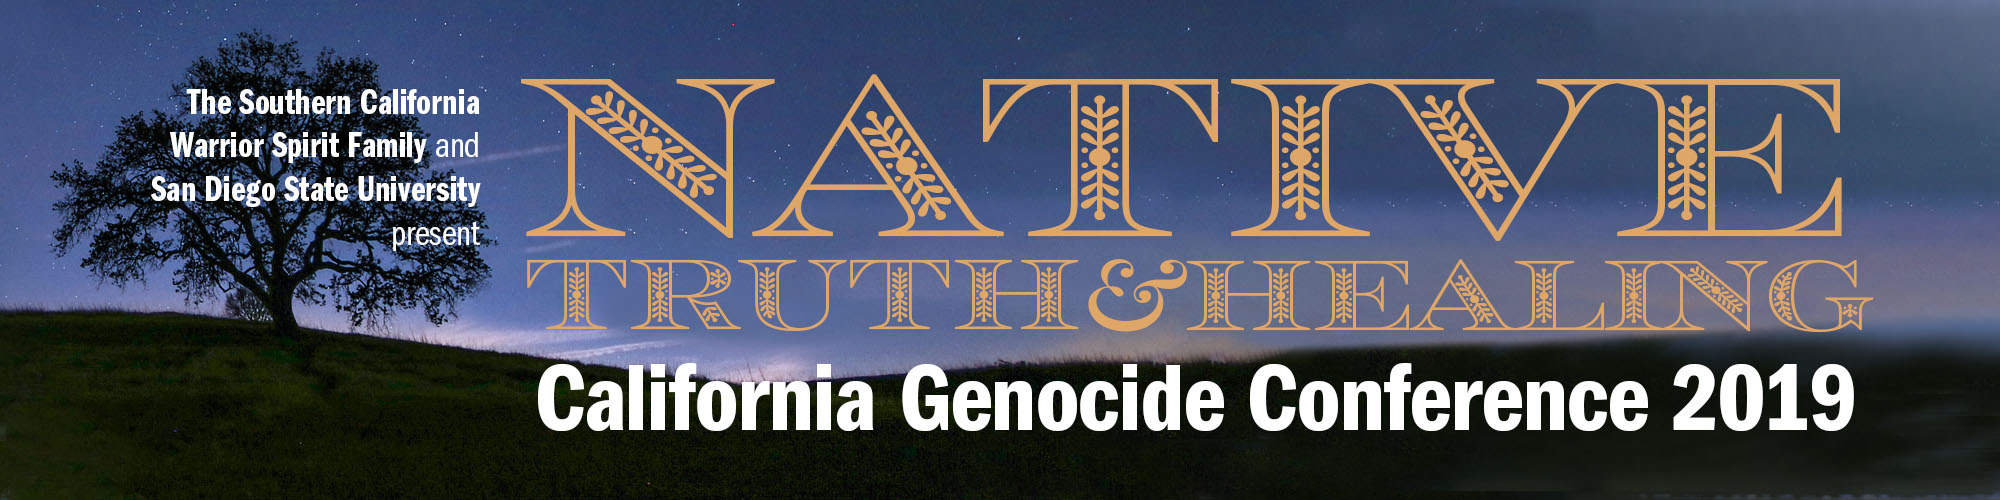 Native Truth and Healing: The Genocide, Oppression, Resilience, and Sovereignty of the First Peoples of California